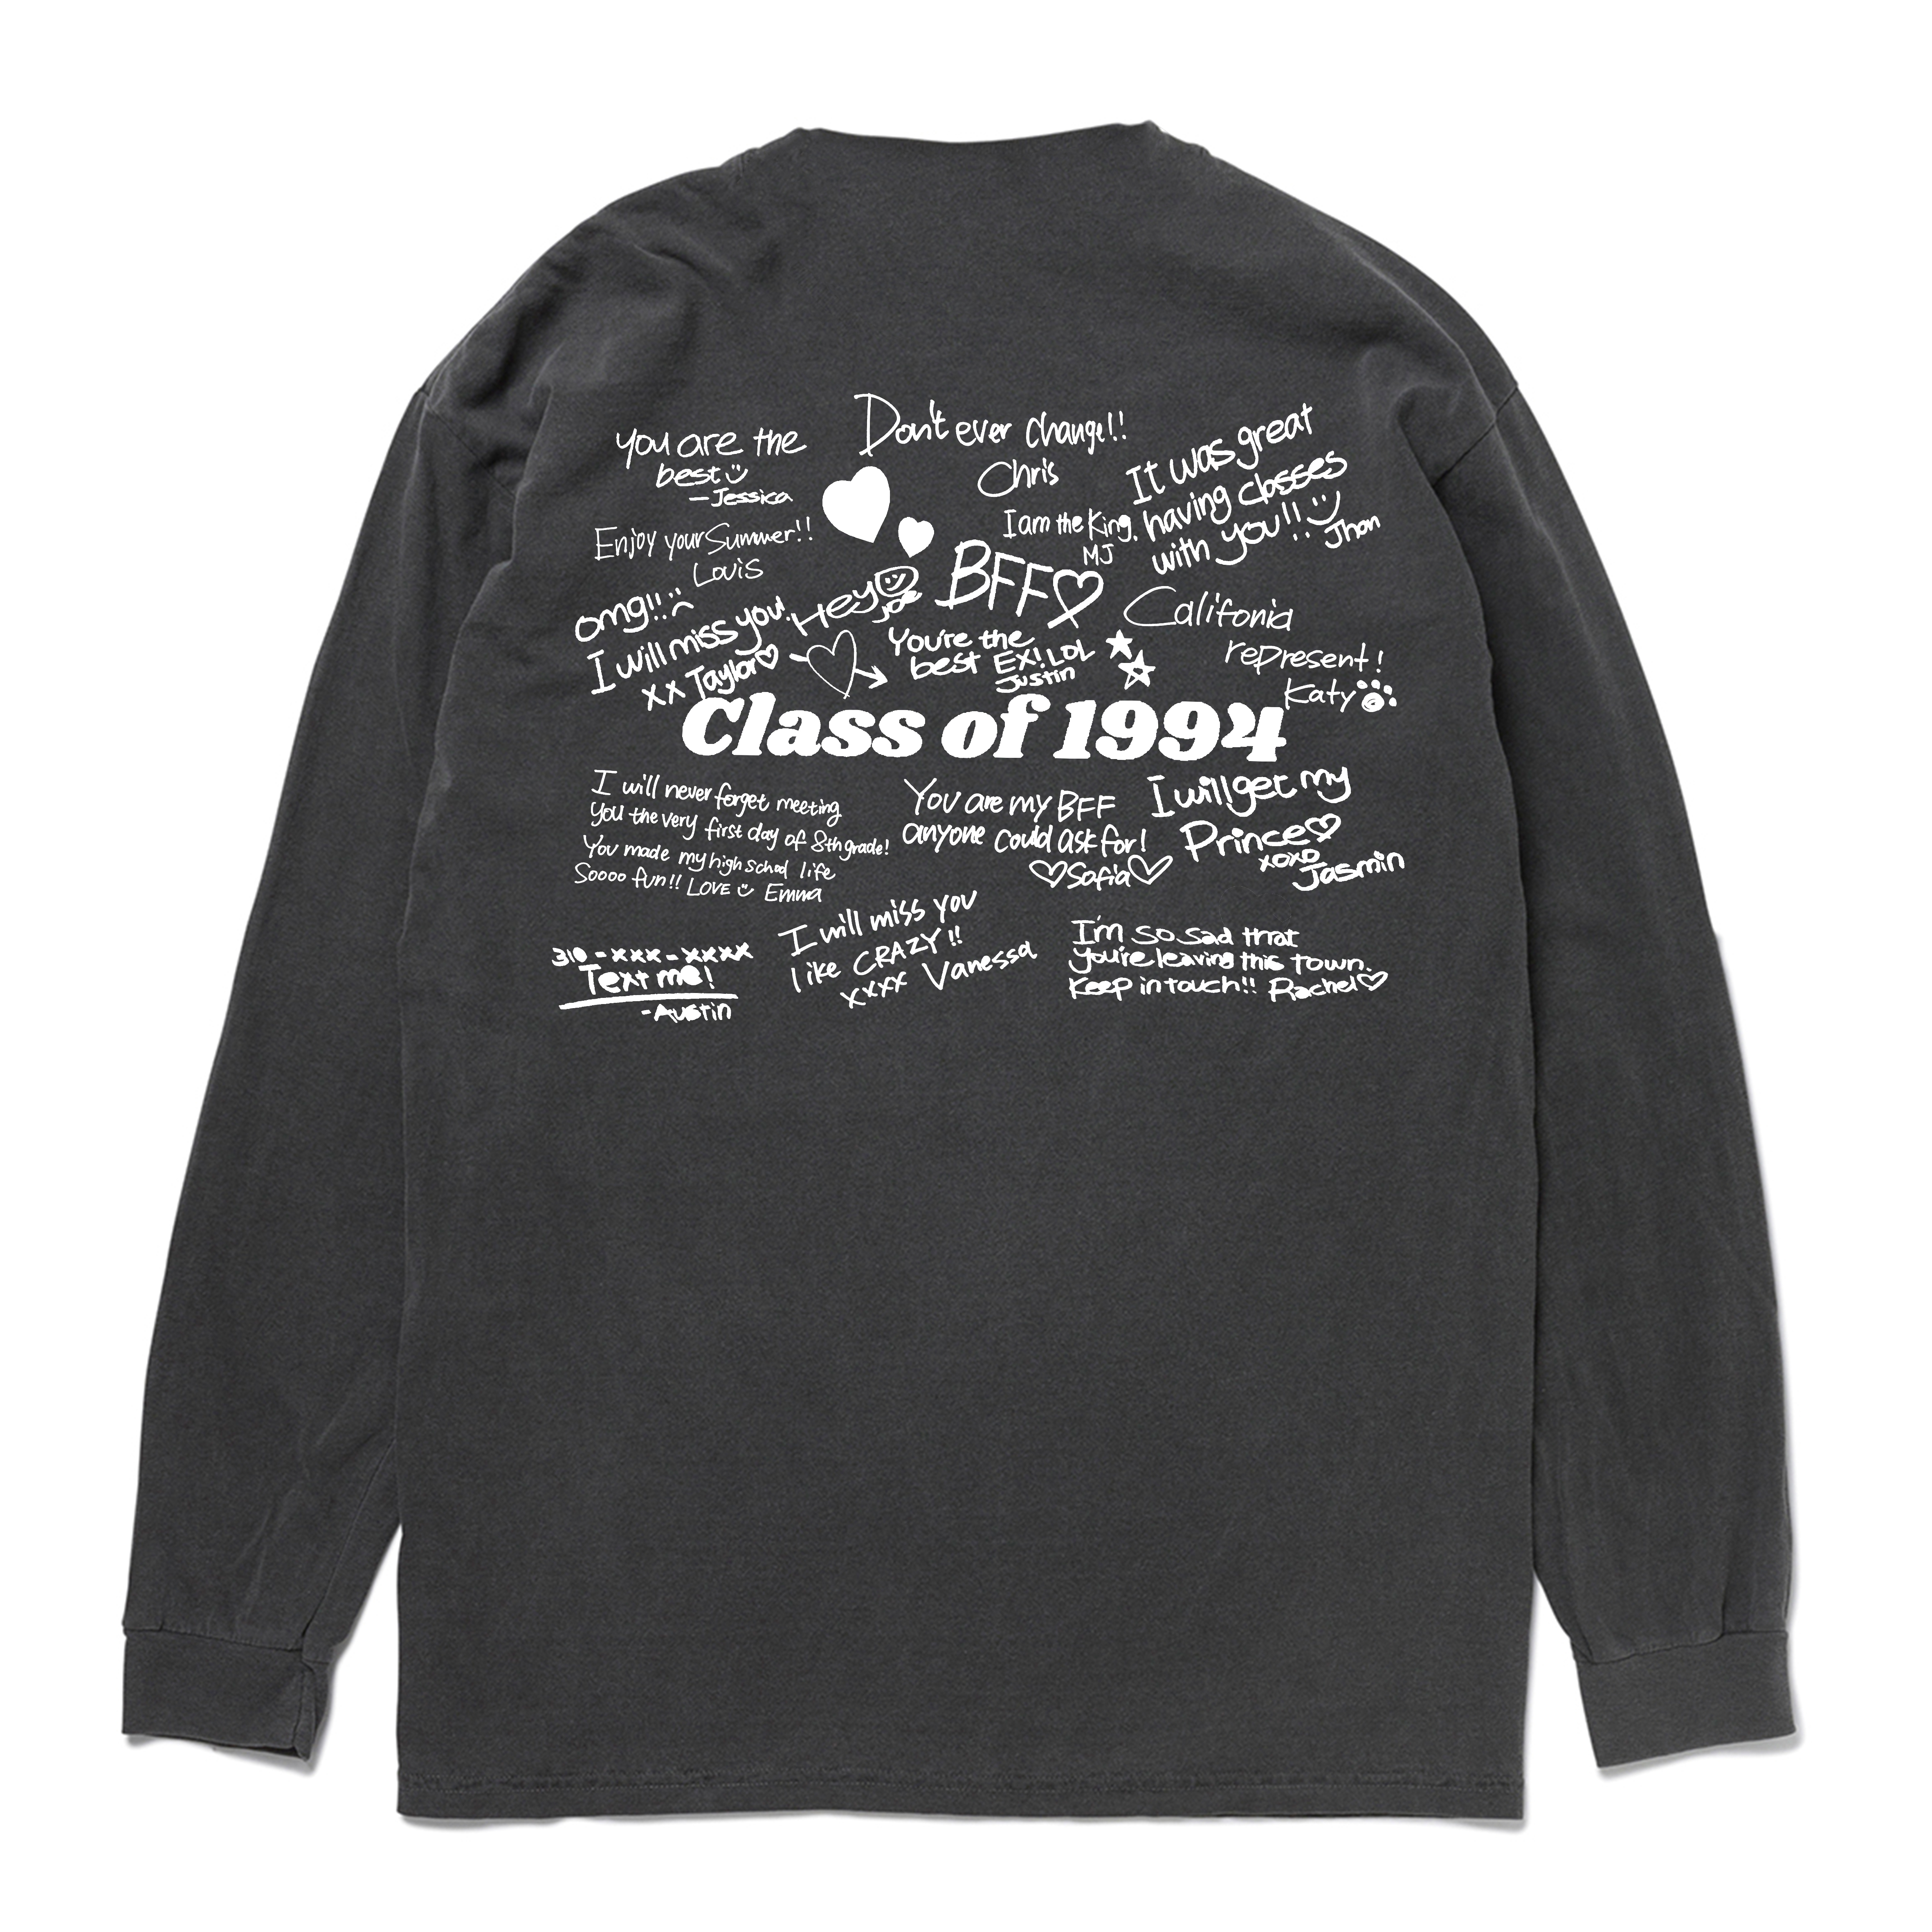 Class of 1994 Yearbook Vintage Long Sleeve